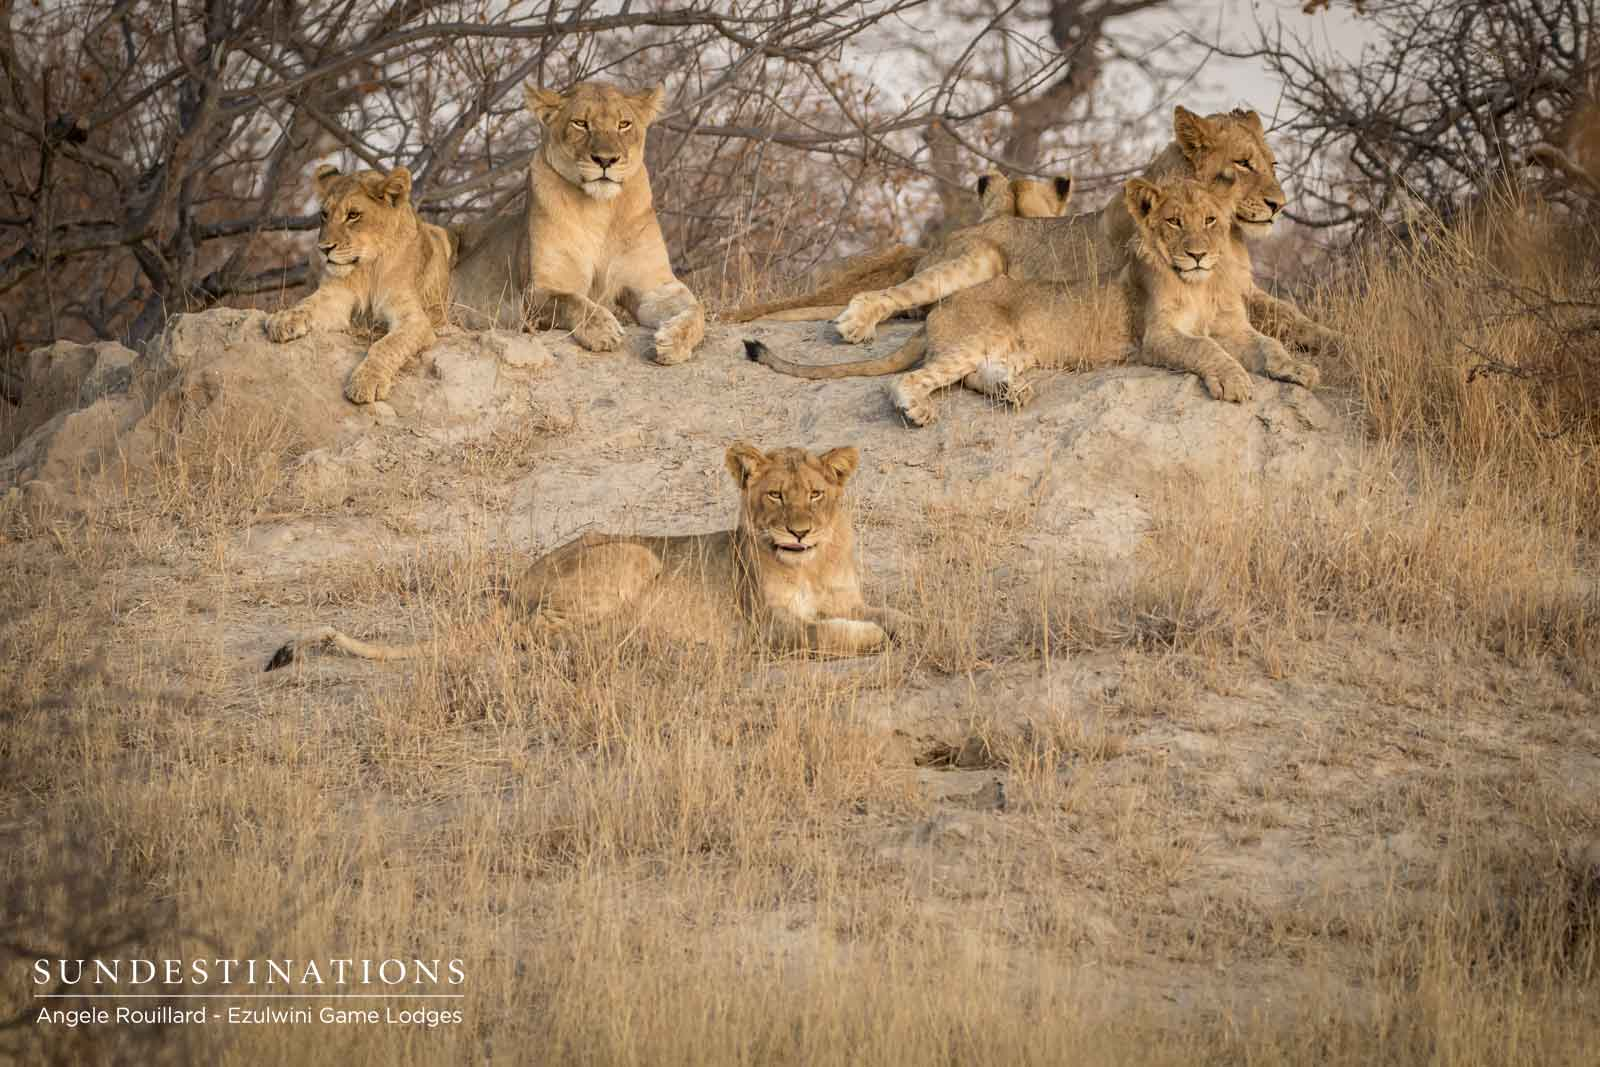 Kudyela and Cubs at Ezulwini